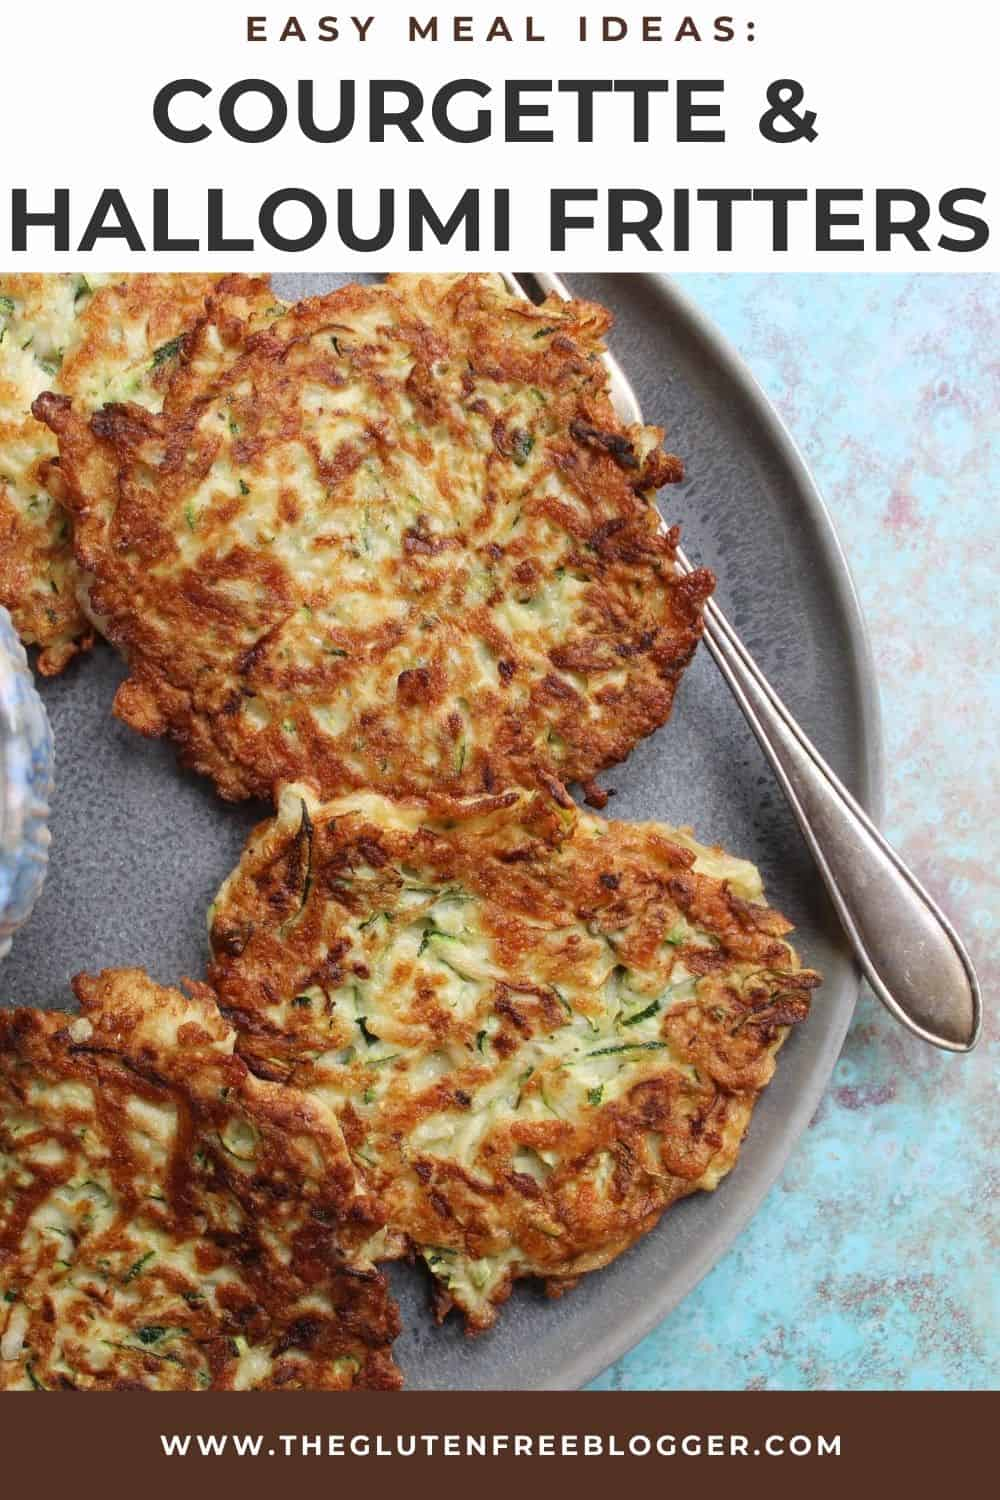 Courgette and Halloumi Fritters (Gluten Free)